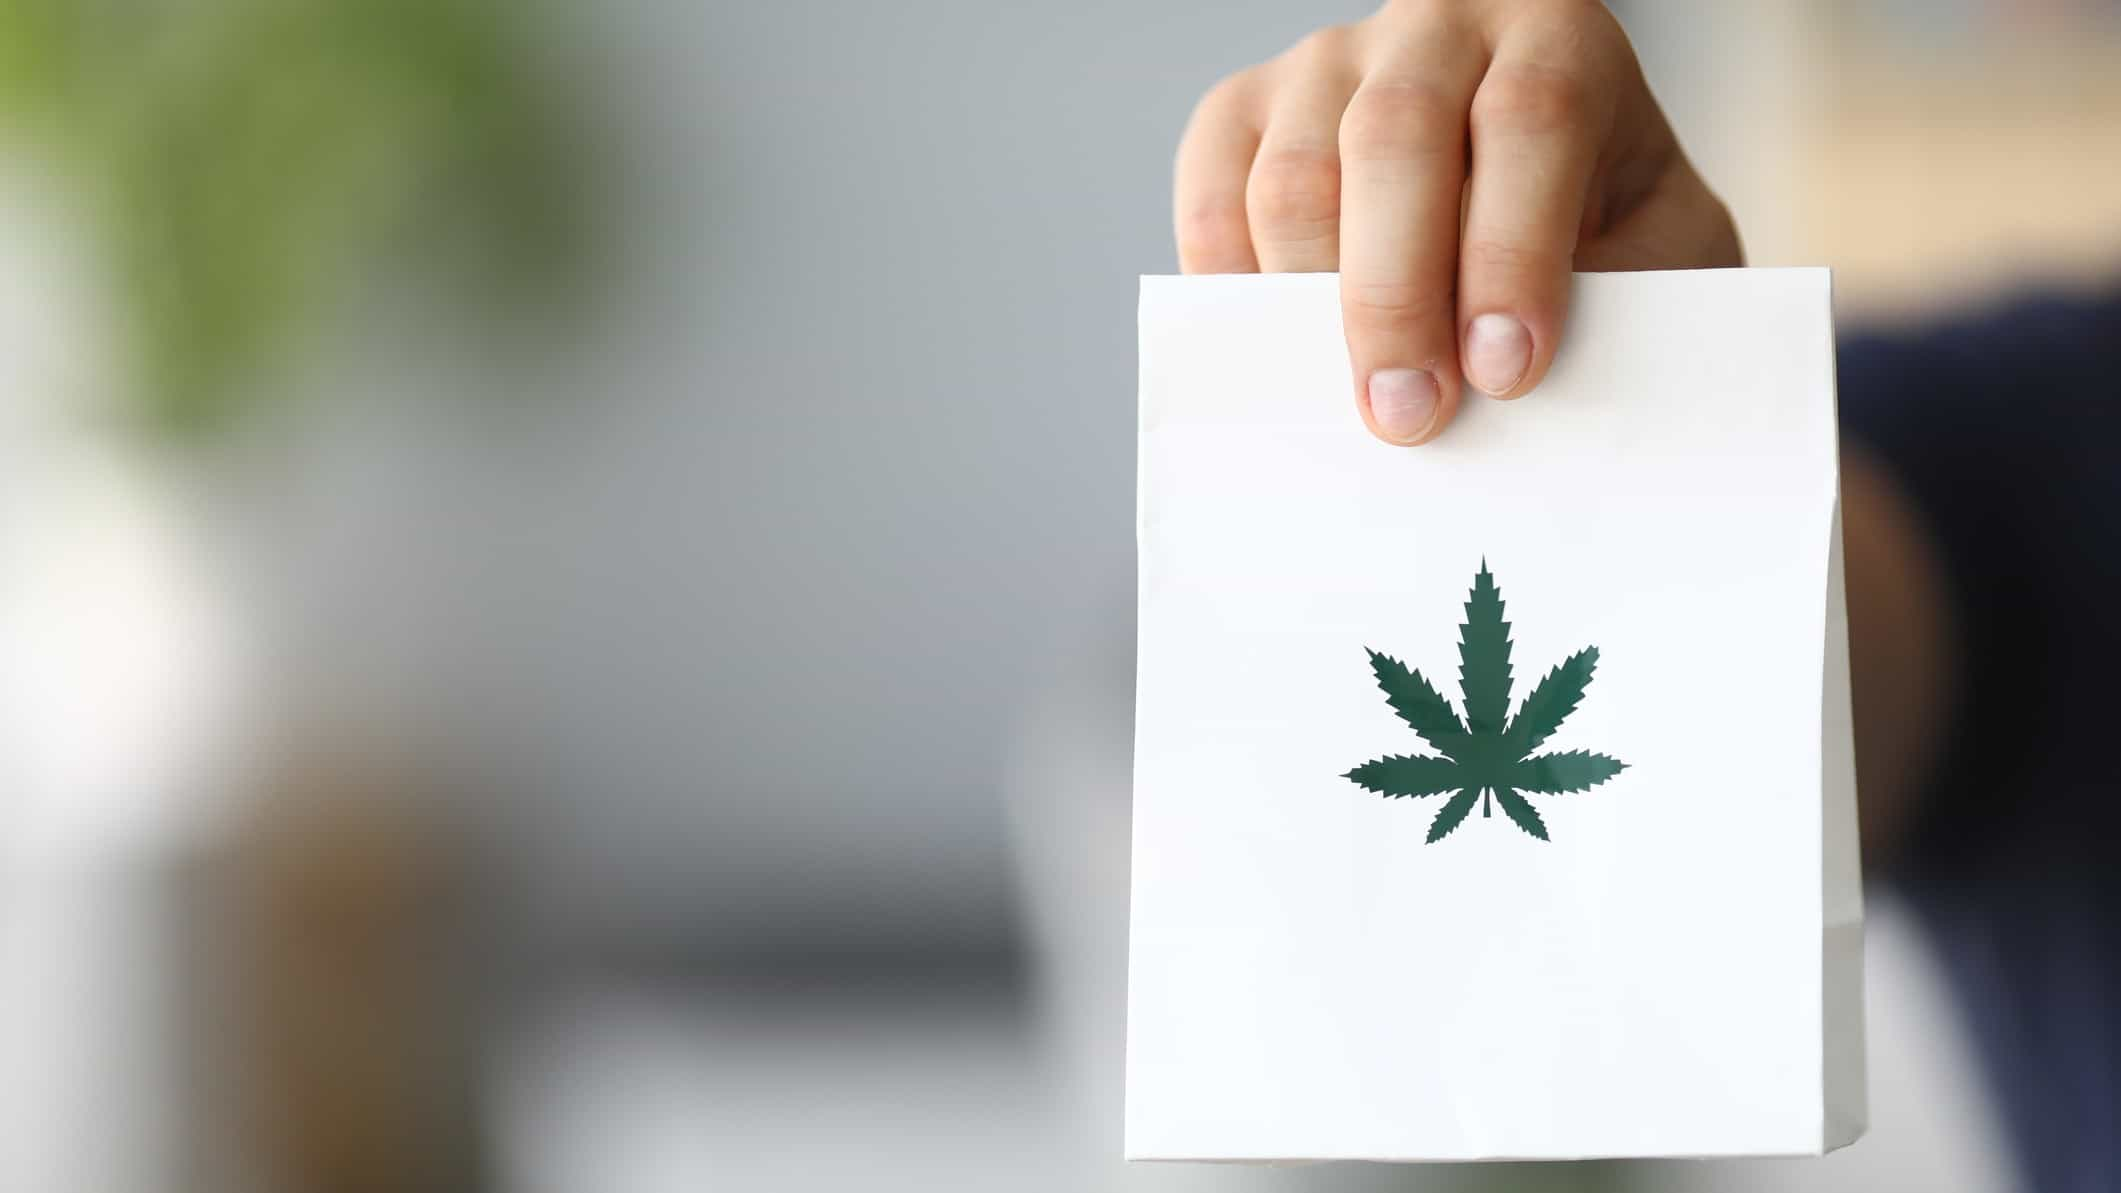 ASX Cannabis share price represented by asx investor holding card with cannabis leaf on it